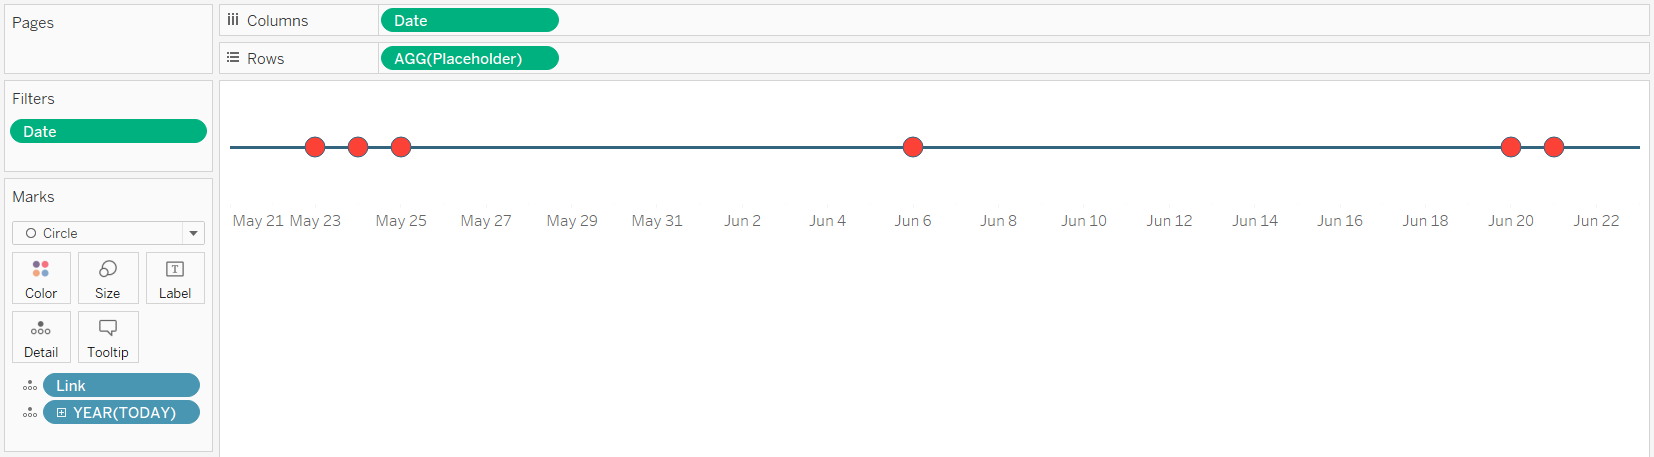 Tableau Timeline with Today on Detail Marks Card